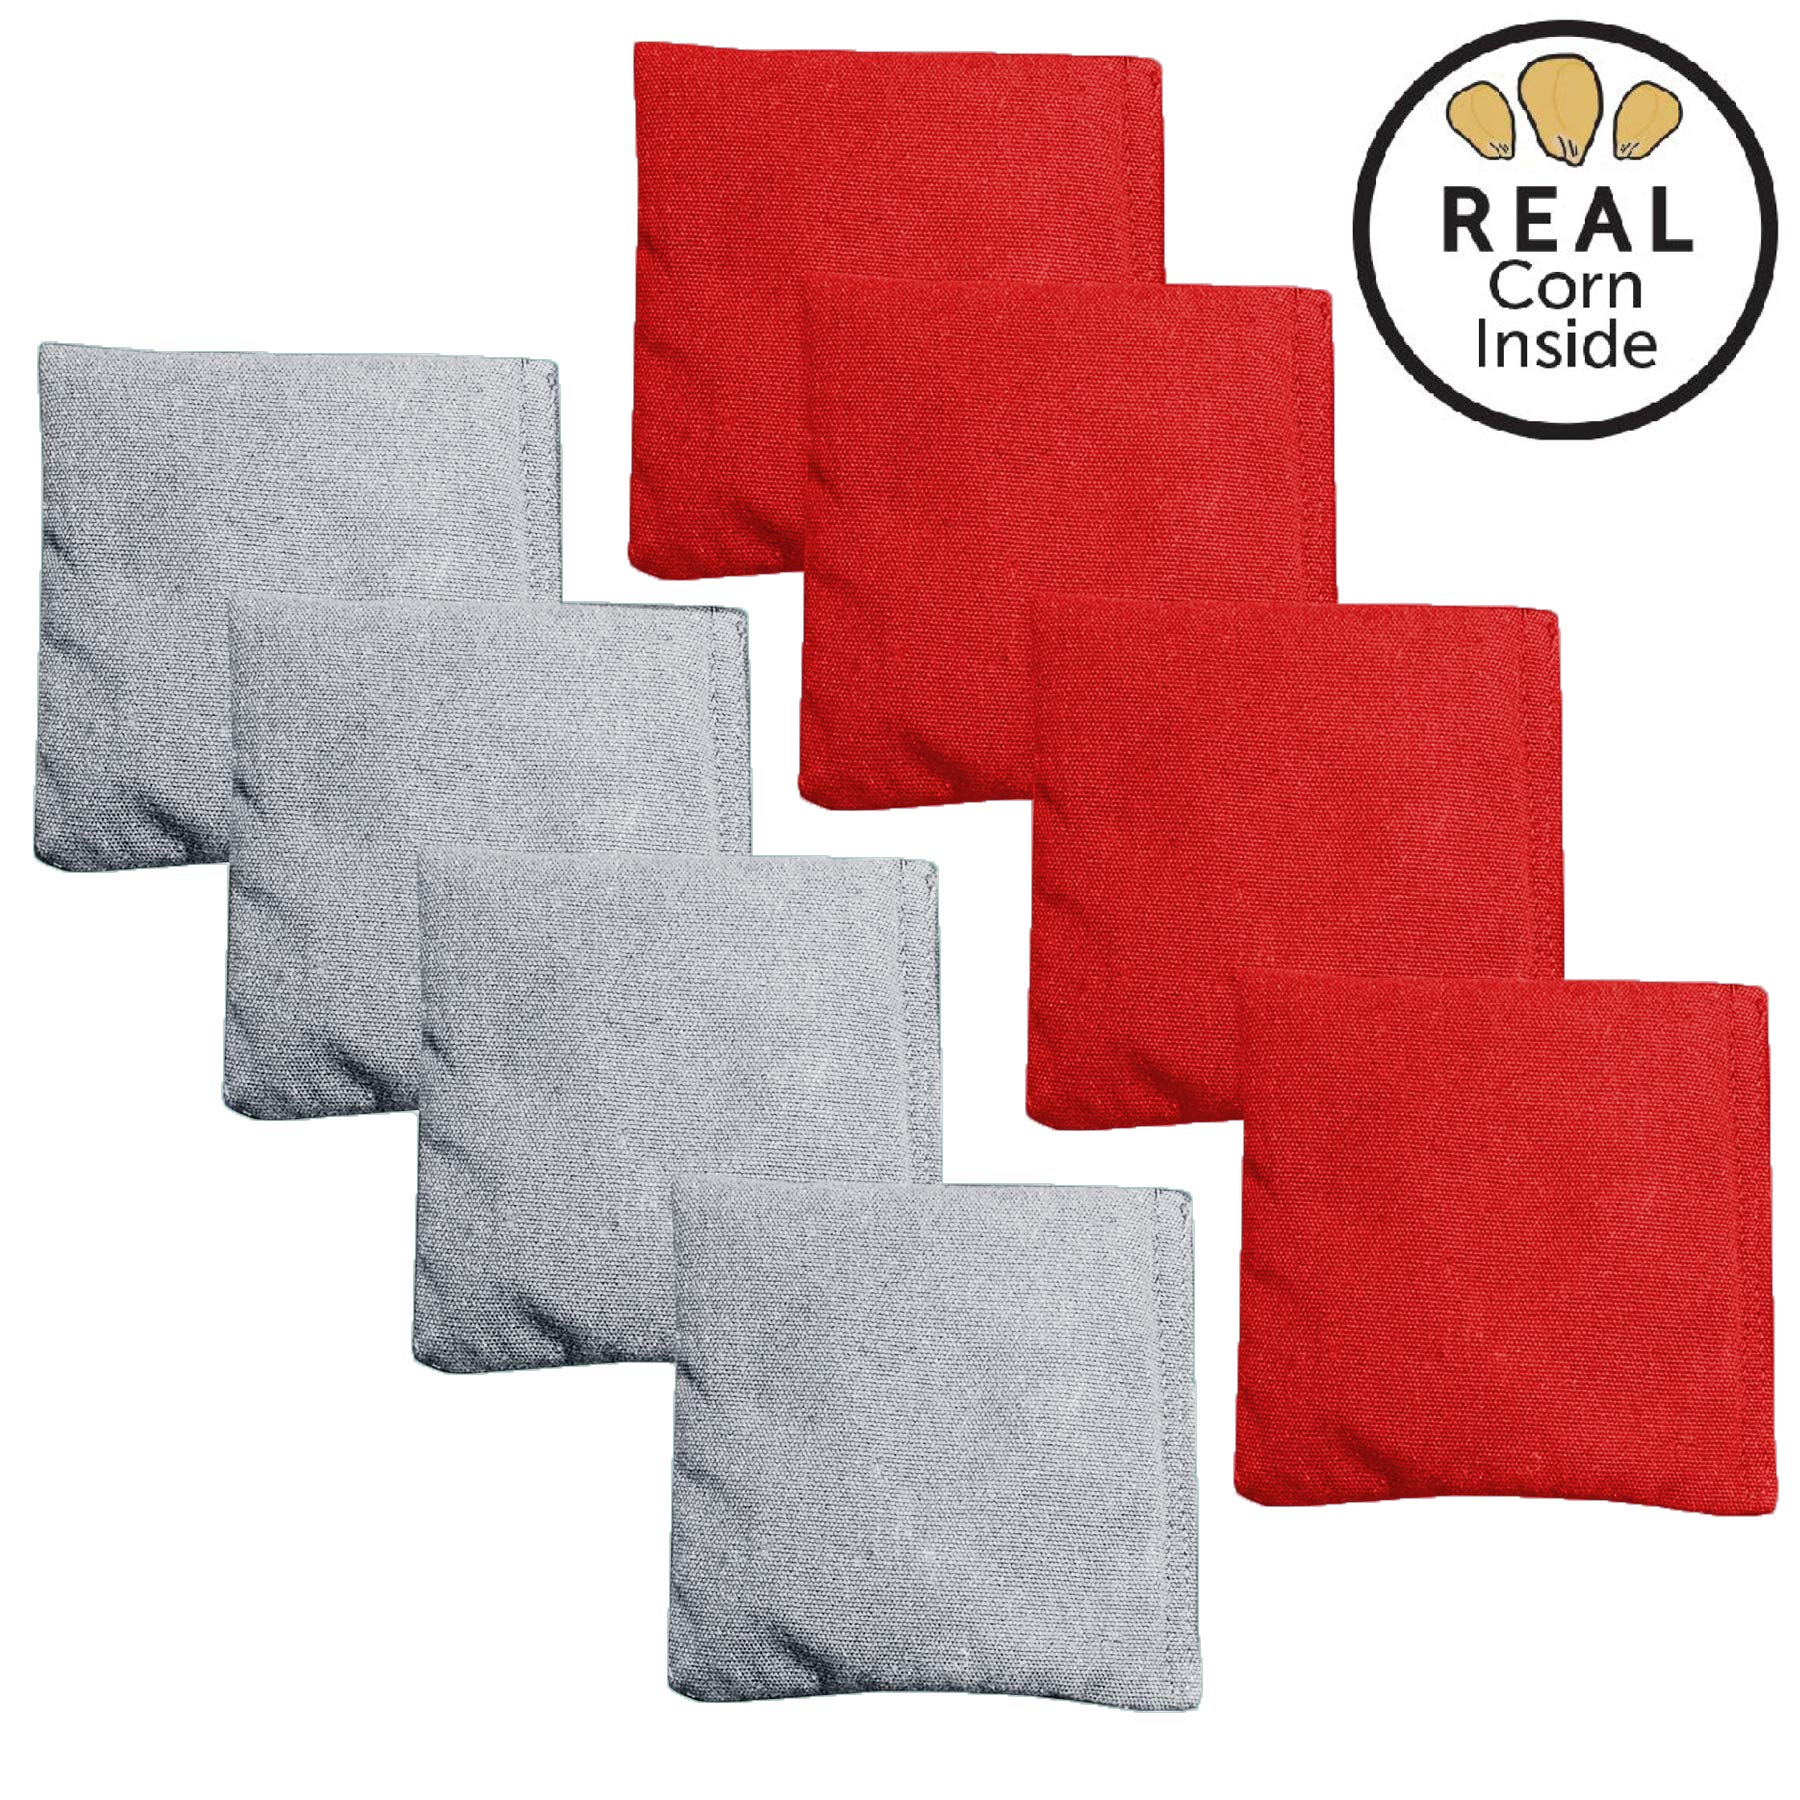 Corn Filled Cornhole Bags - Set of 8 Bean Bags for Corn Hole Game - Regulation Size & Weight - Red and Gray by Play Platoon